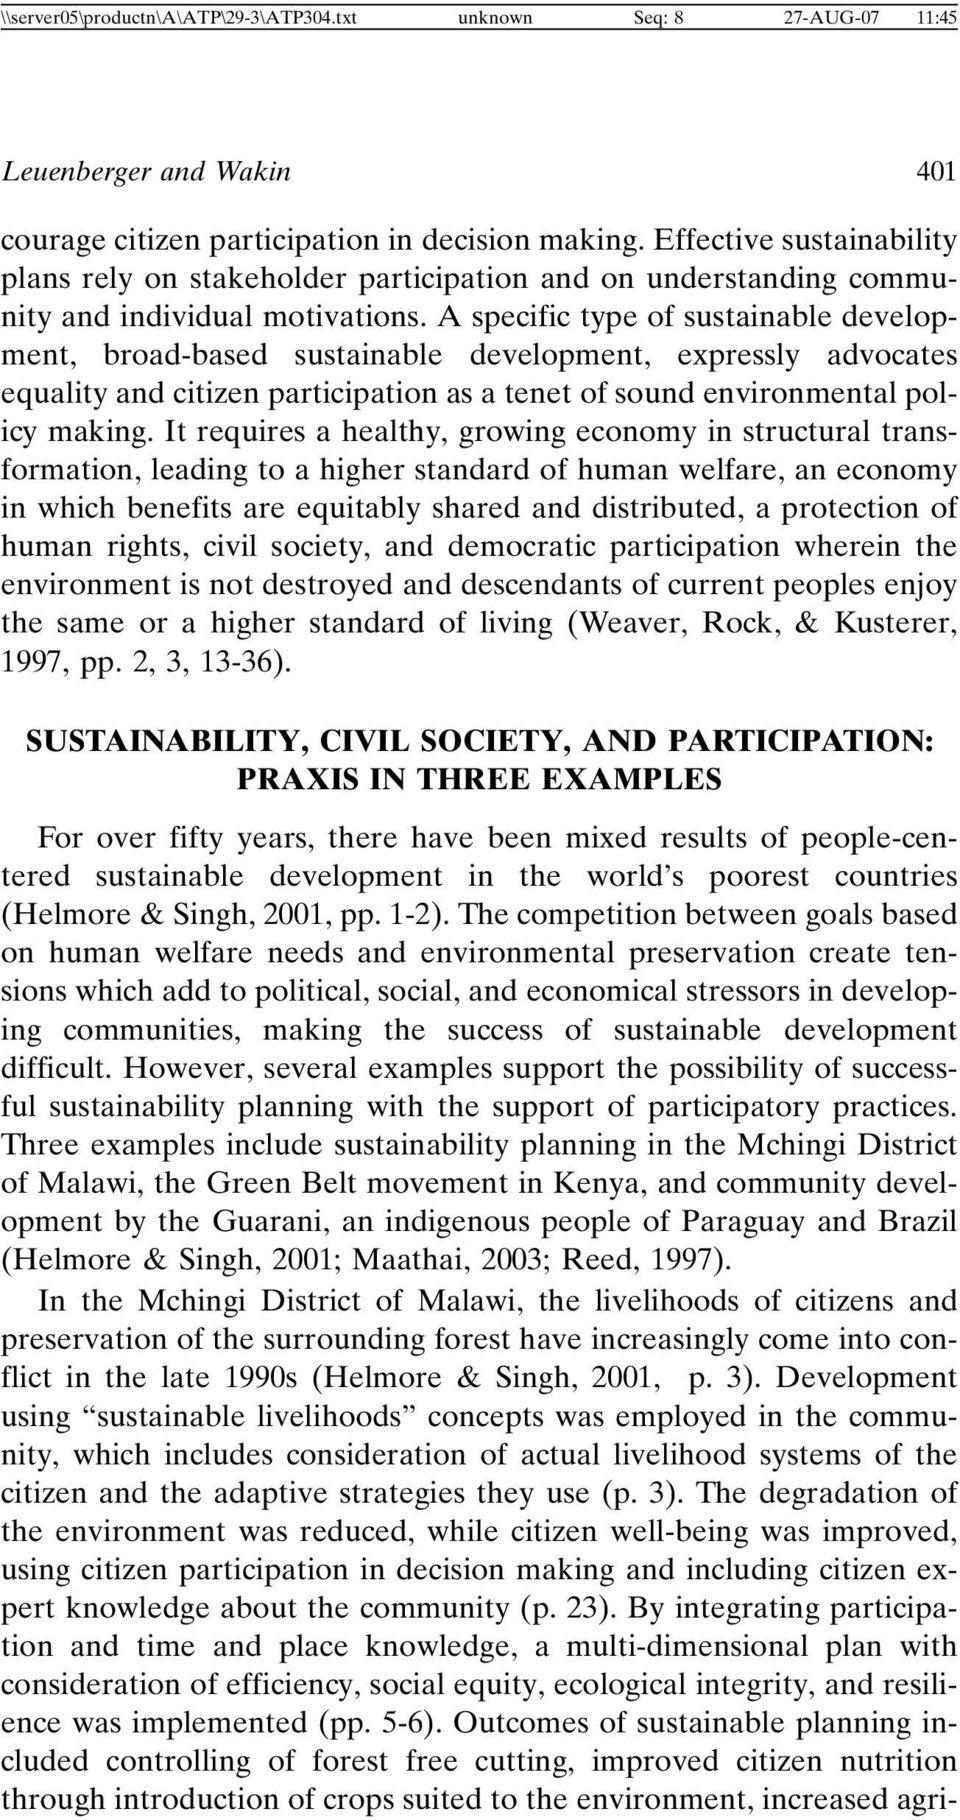 A specific type of sustainable development, broad-based sustainable development, expressly advocates equality and citizen participation as a tenet of sound environmental policy making.